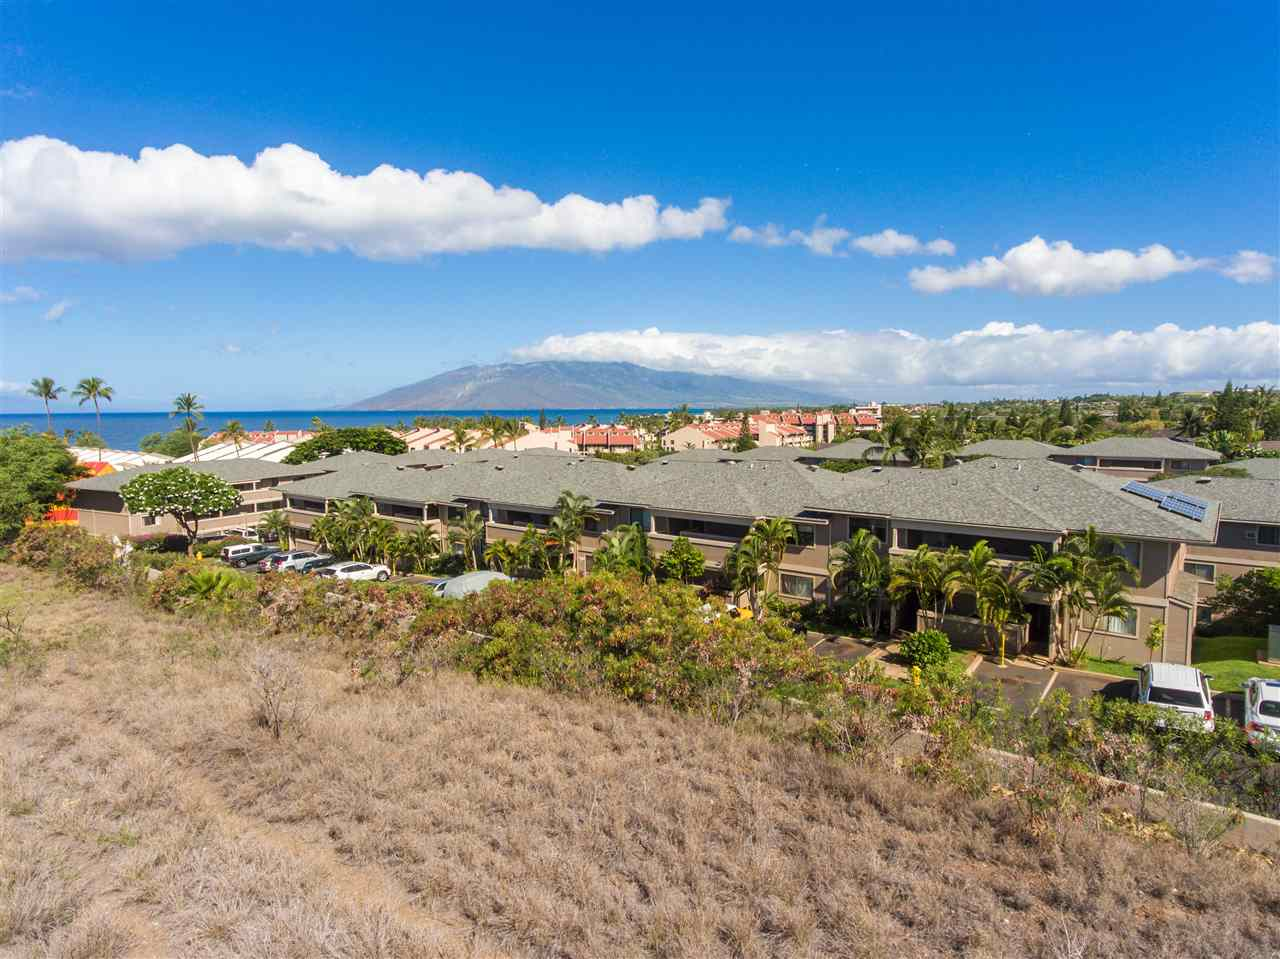 2757 South Kihei, #702, Kihei, HI 96753